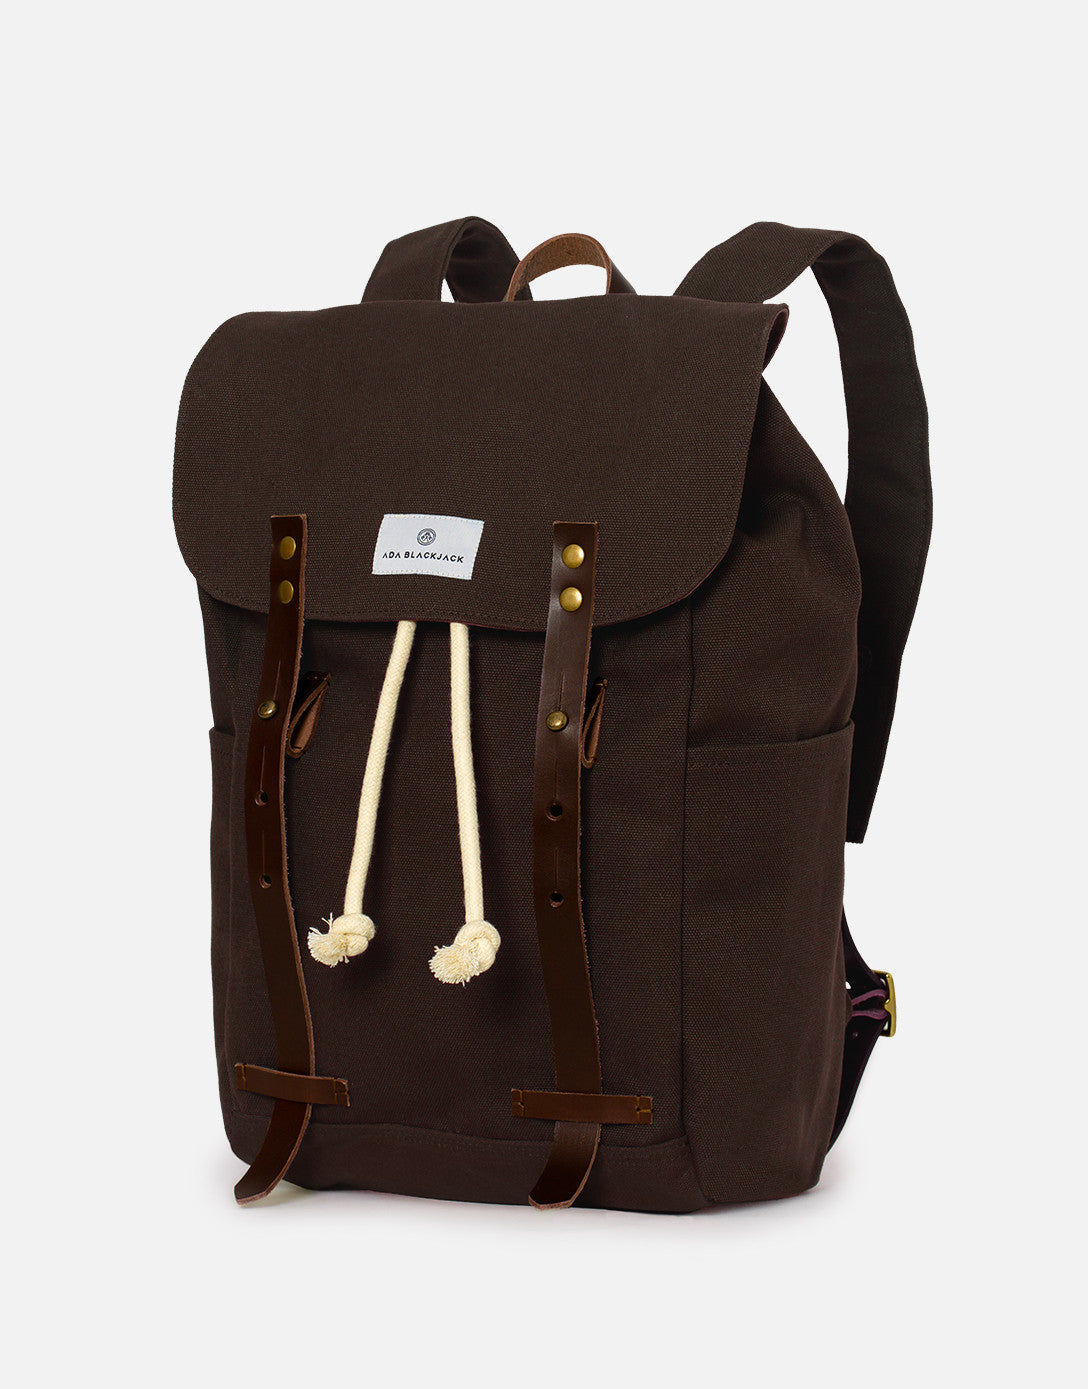 No. 2 Backpack, Bourbon